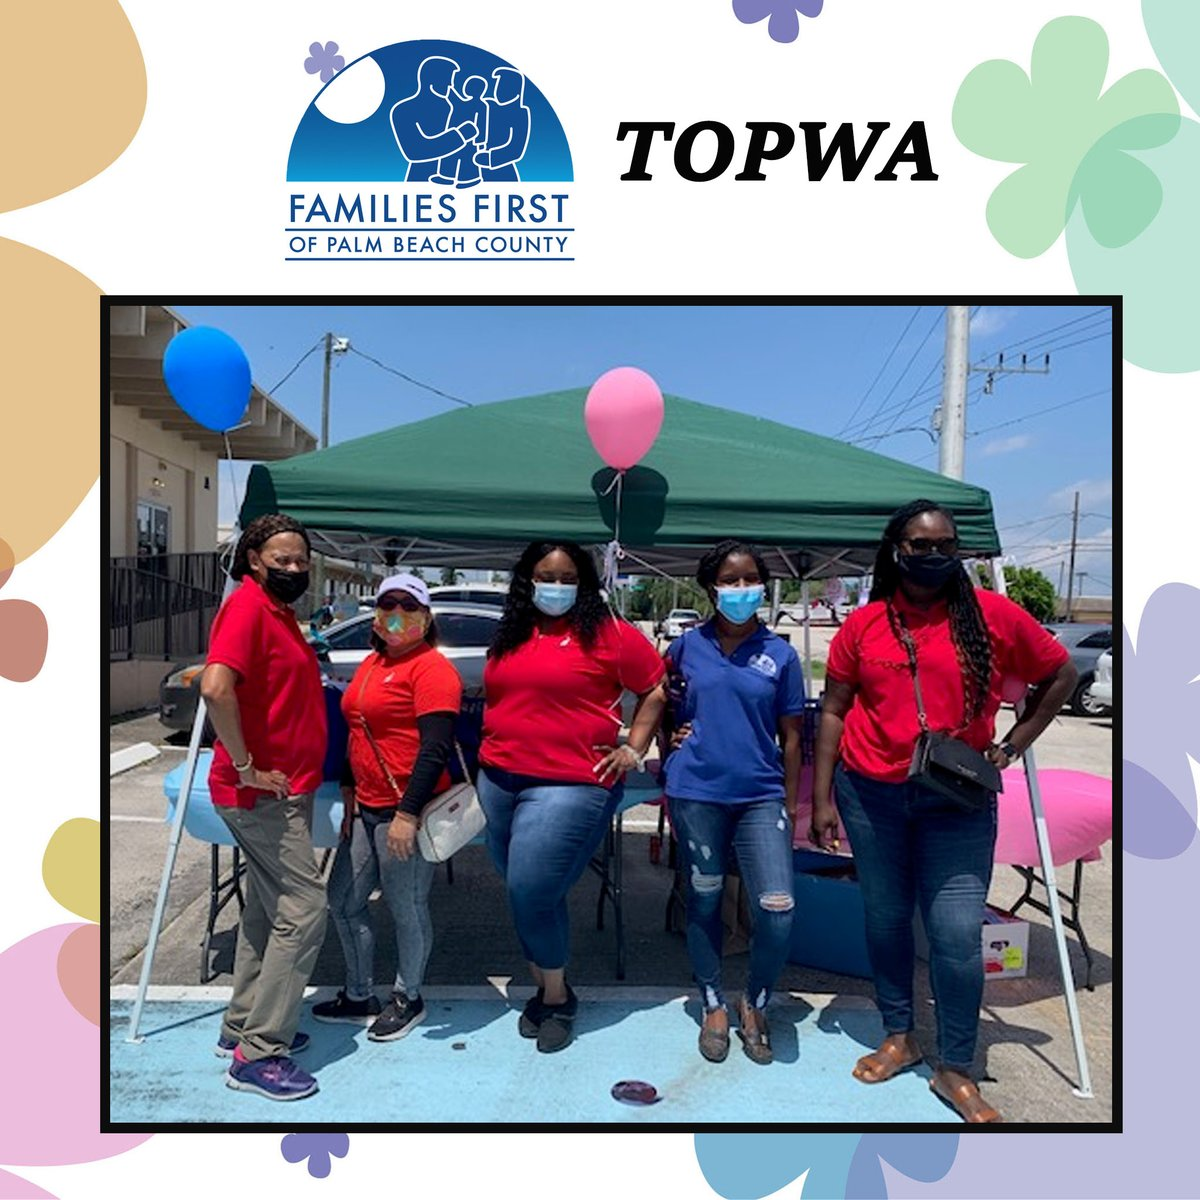 Congratulations! @PBUnitedWay is proud to help support the @FamiliesFirstPB TOPWA program through the generous donations we receive to our annual campaign. #LiveUnited #PalmBeachCounty https://t.co/FEe7ie9Ed1